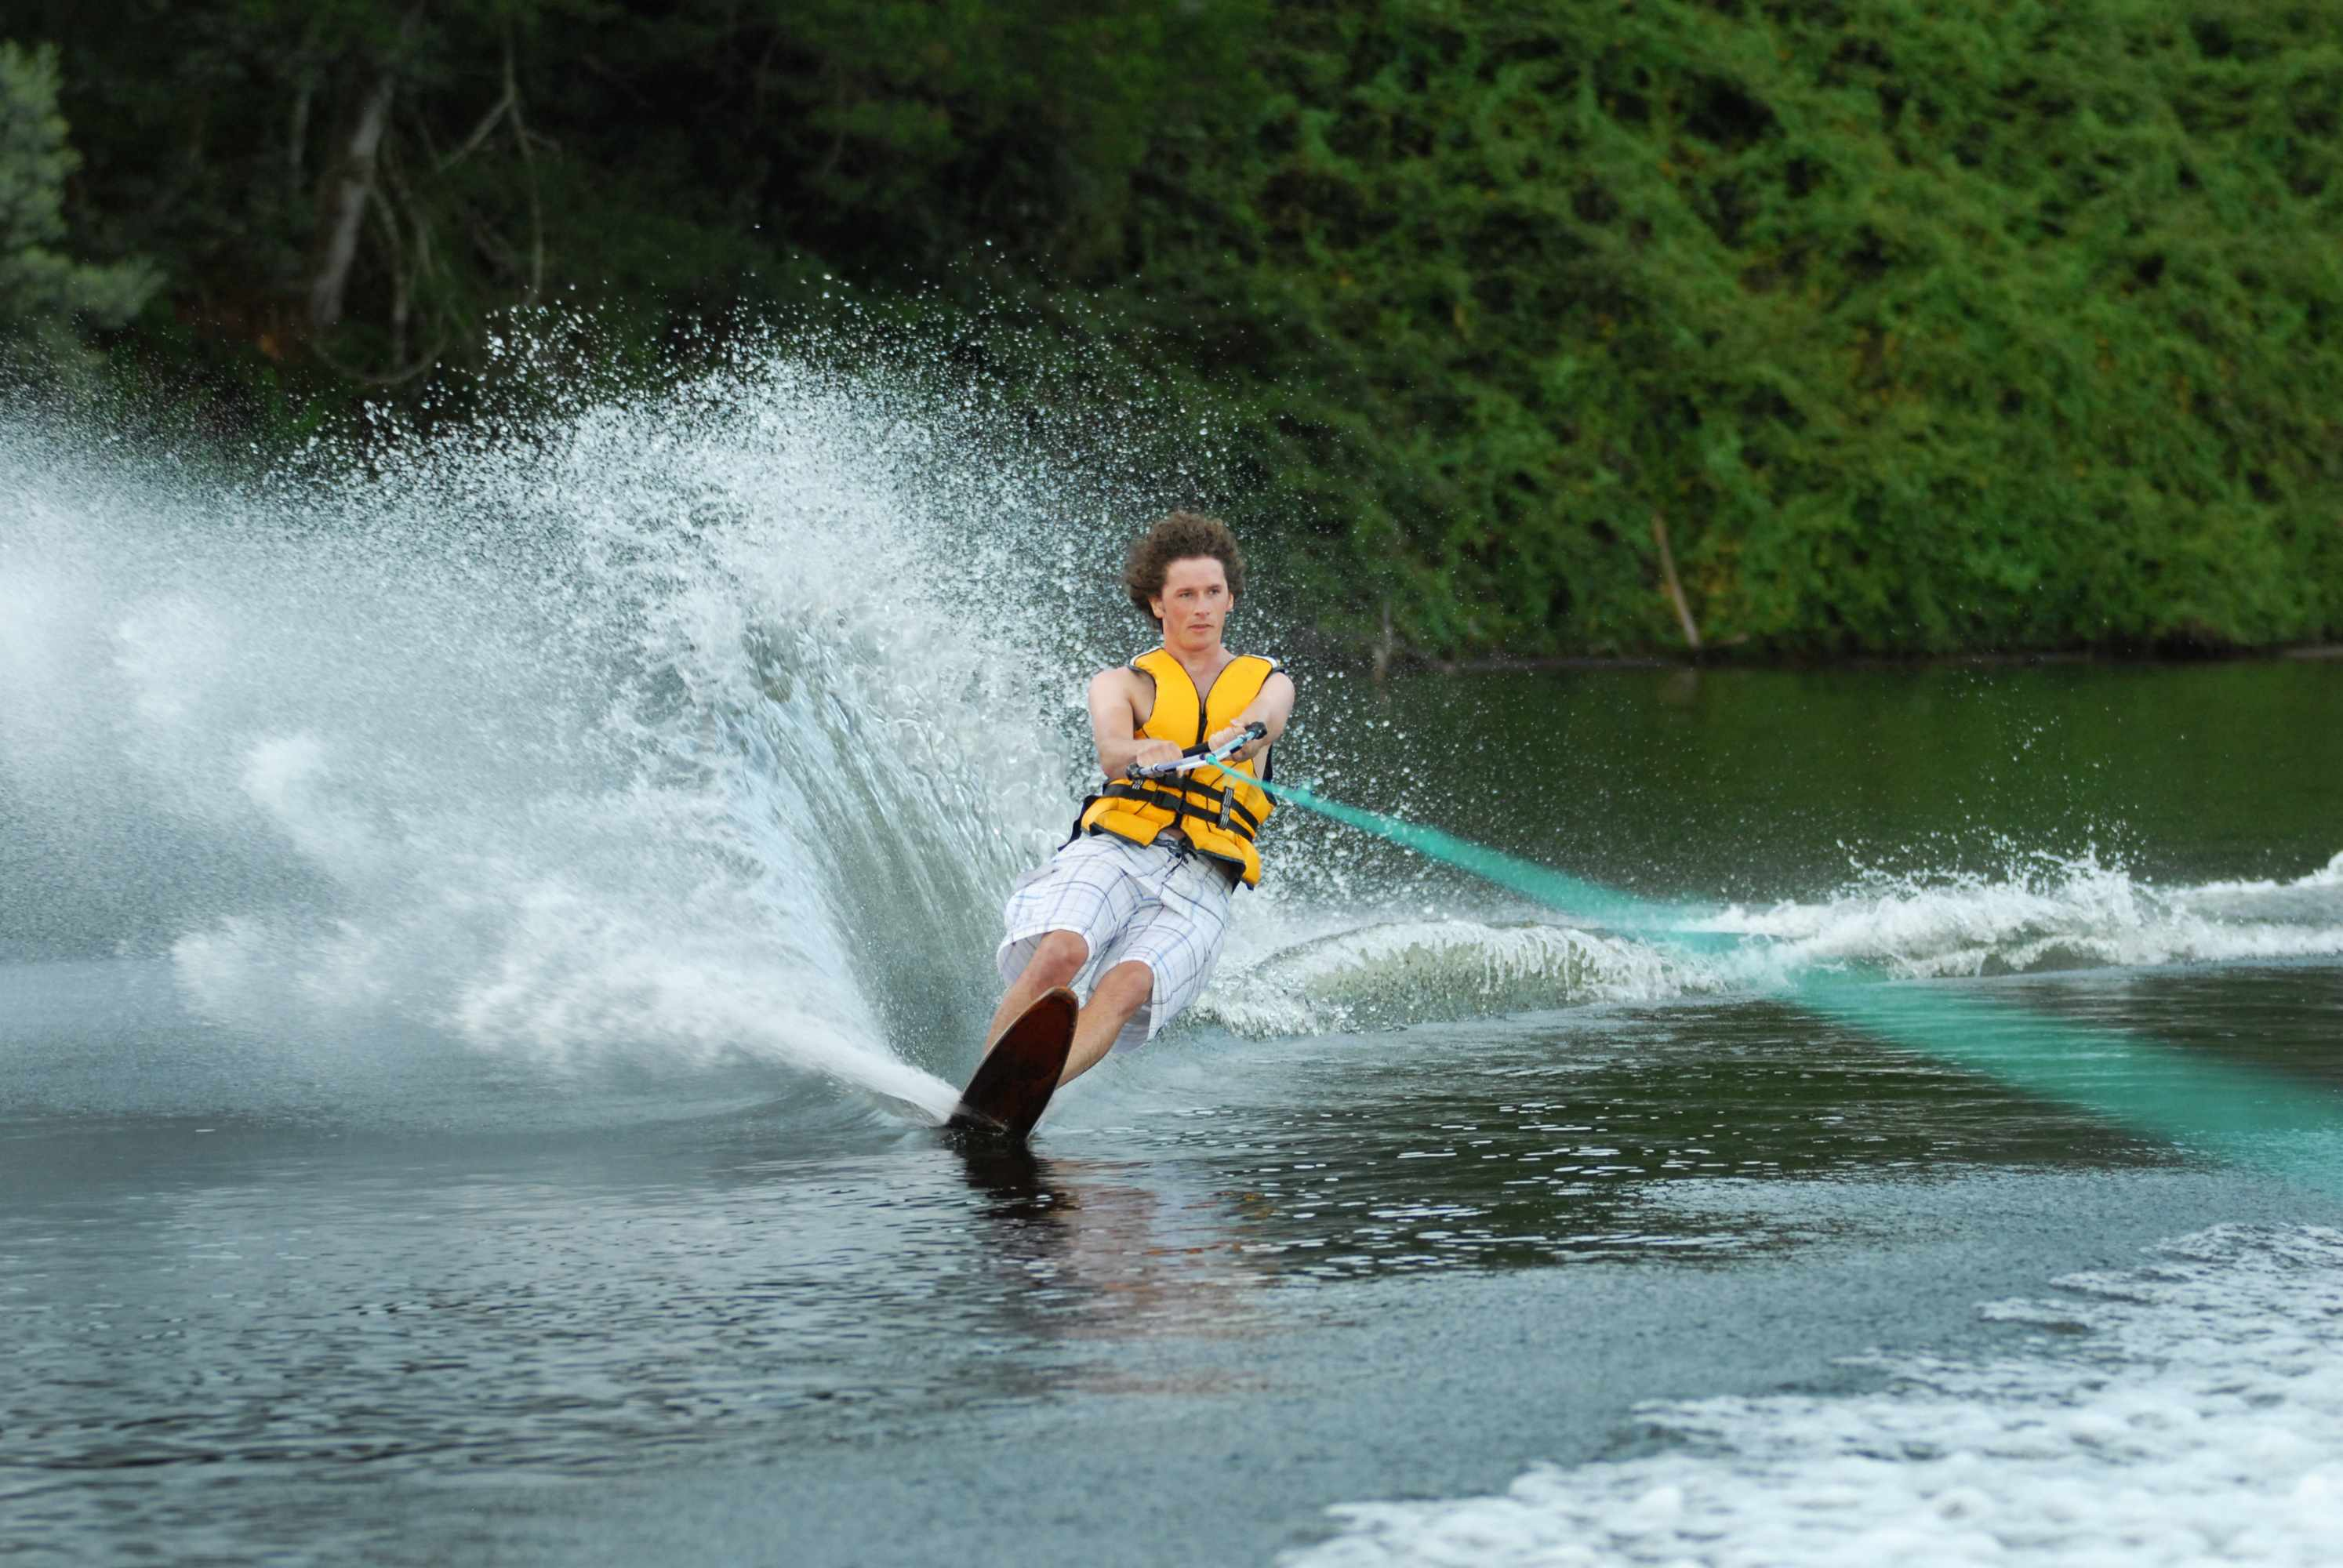 a boy teenager water skiing wearing a life jacket